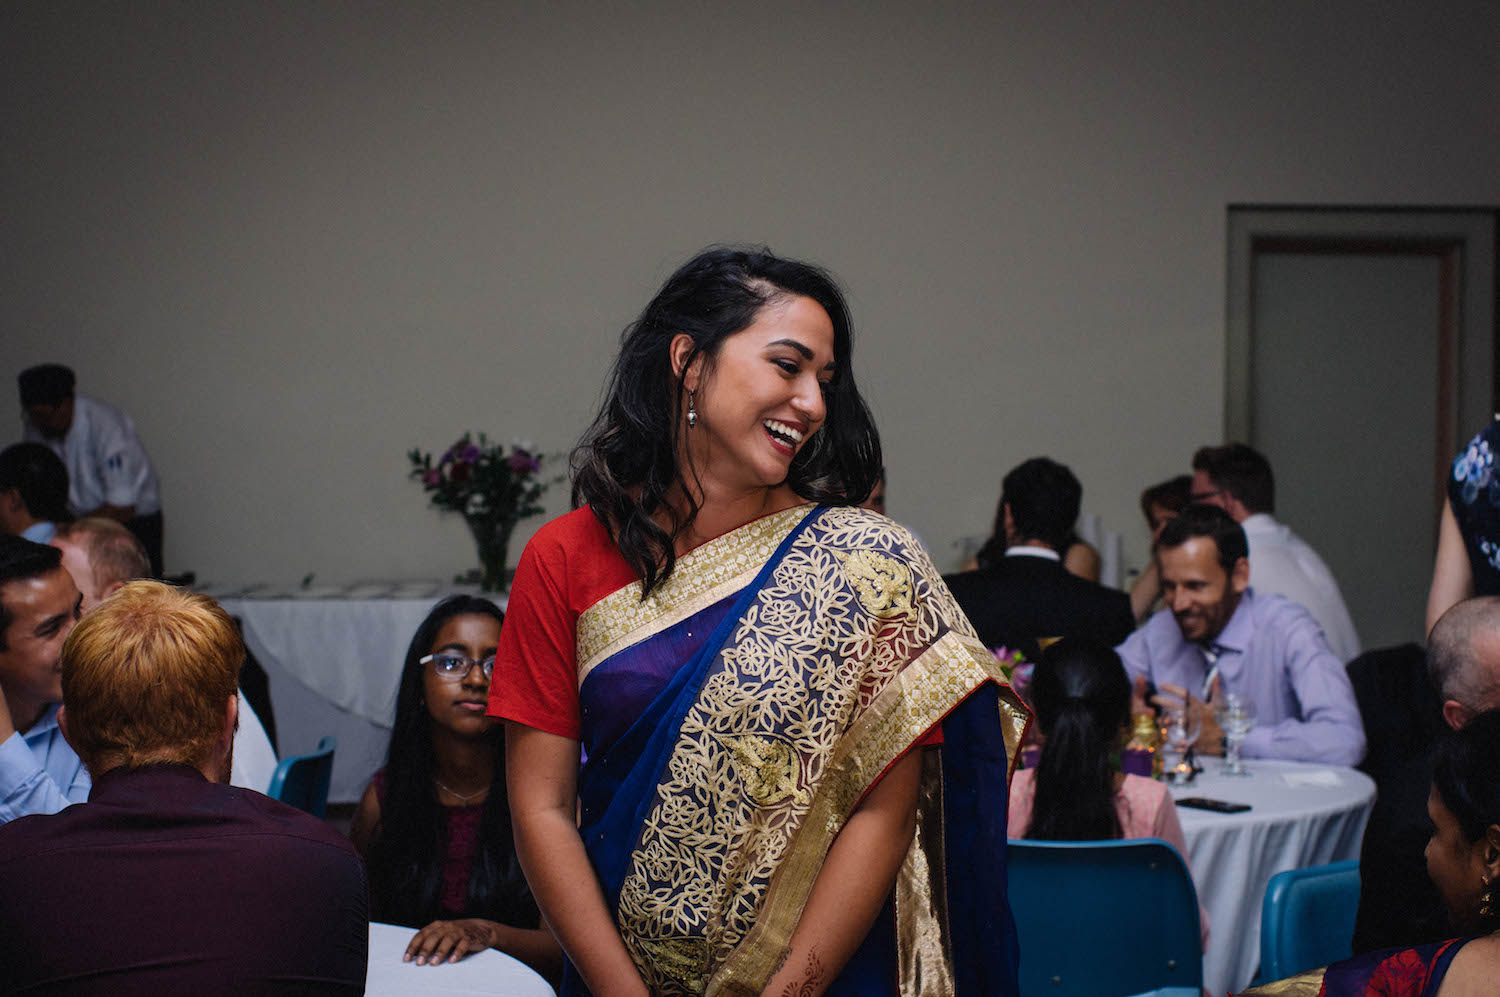 A candid wedding photograph of a bridesmaid in her Sari as she laughs with other guests